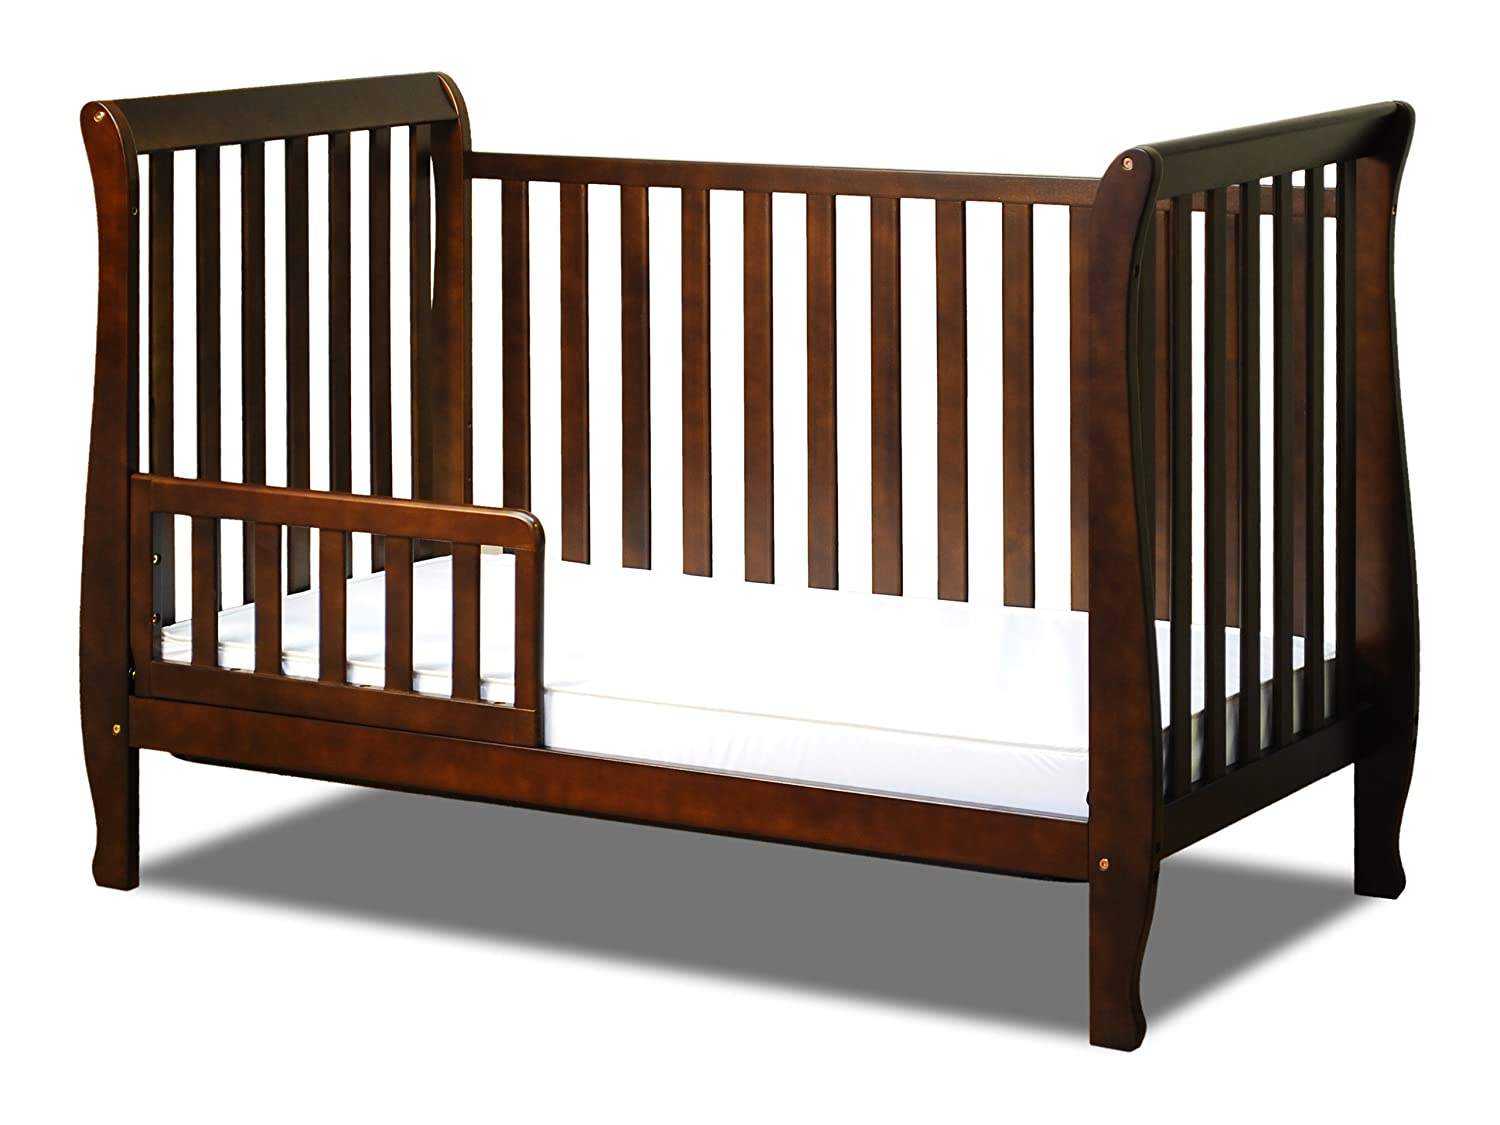 Amazon.com : Athena Naomi 4 In 1 Crib With Toddler Rail, Espresso : Toddler  Beds : Baby